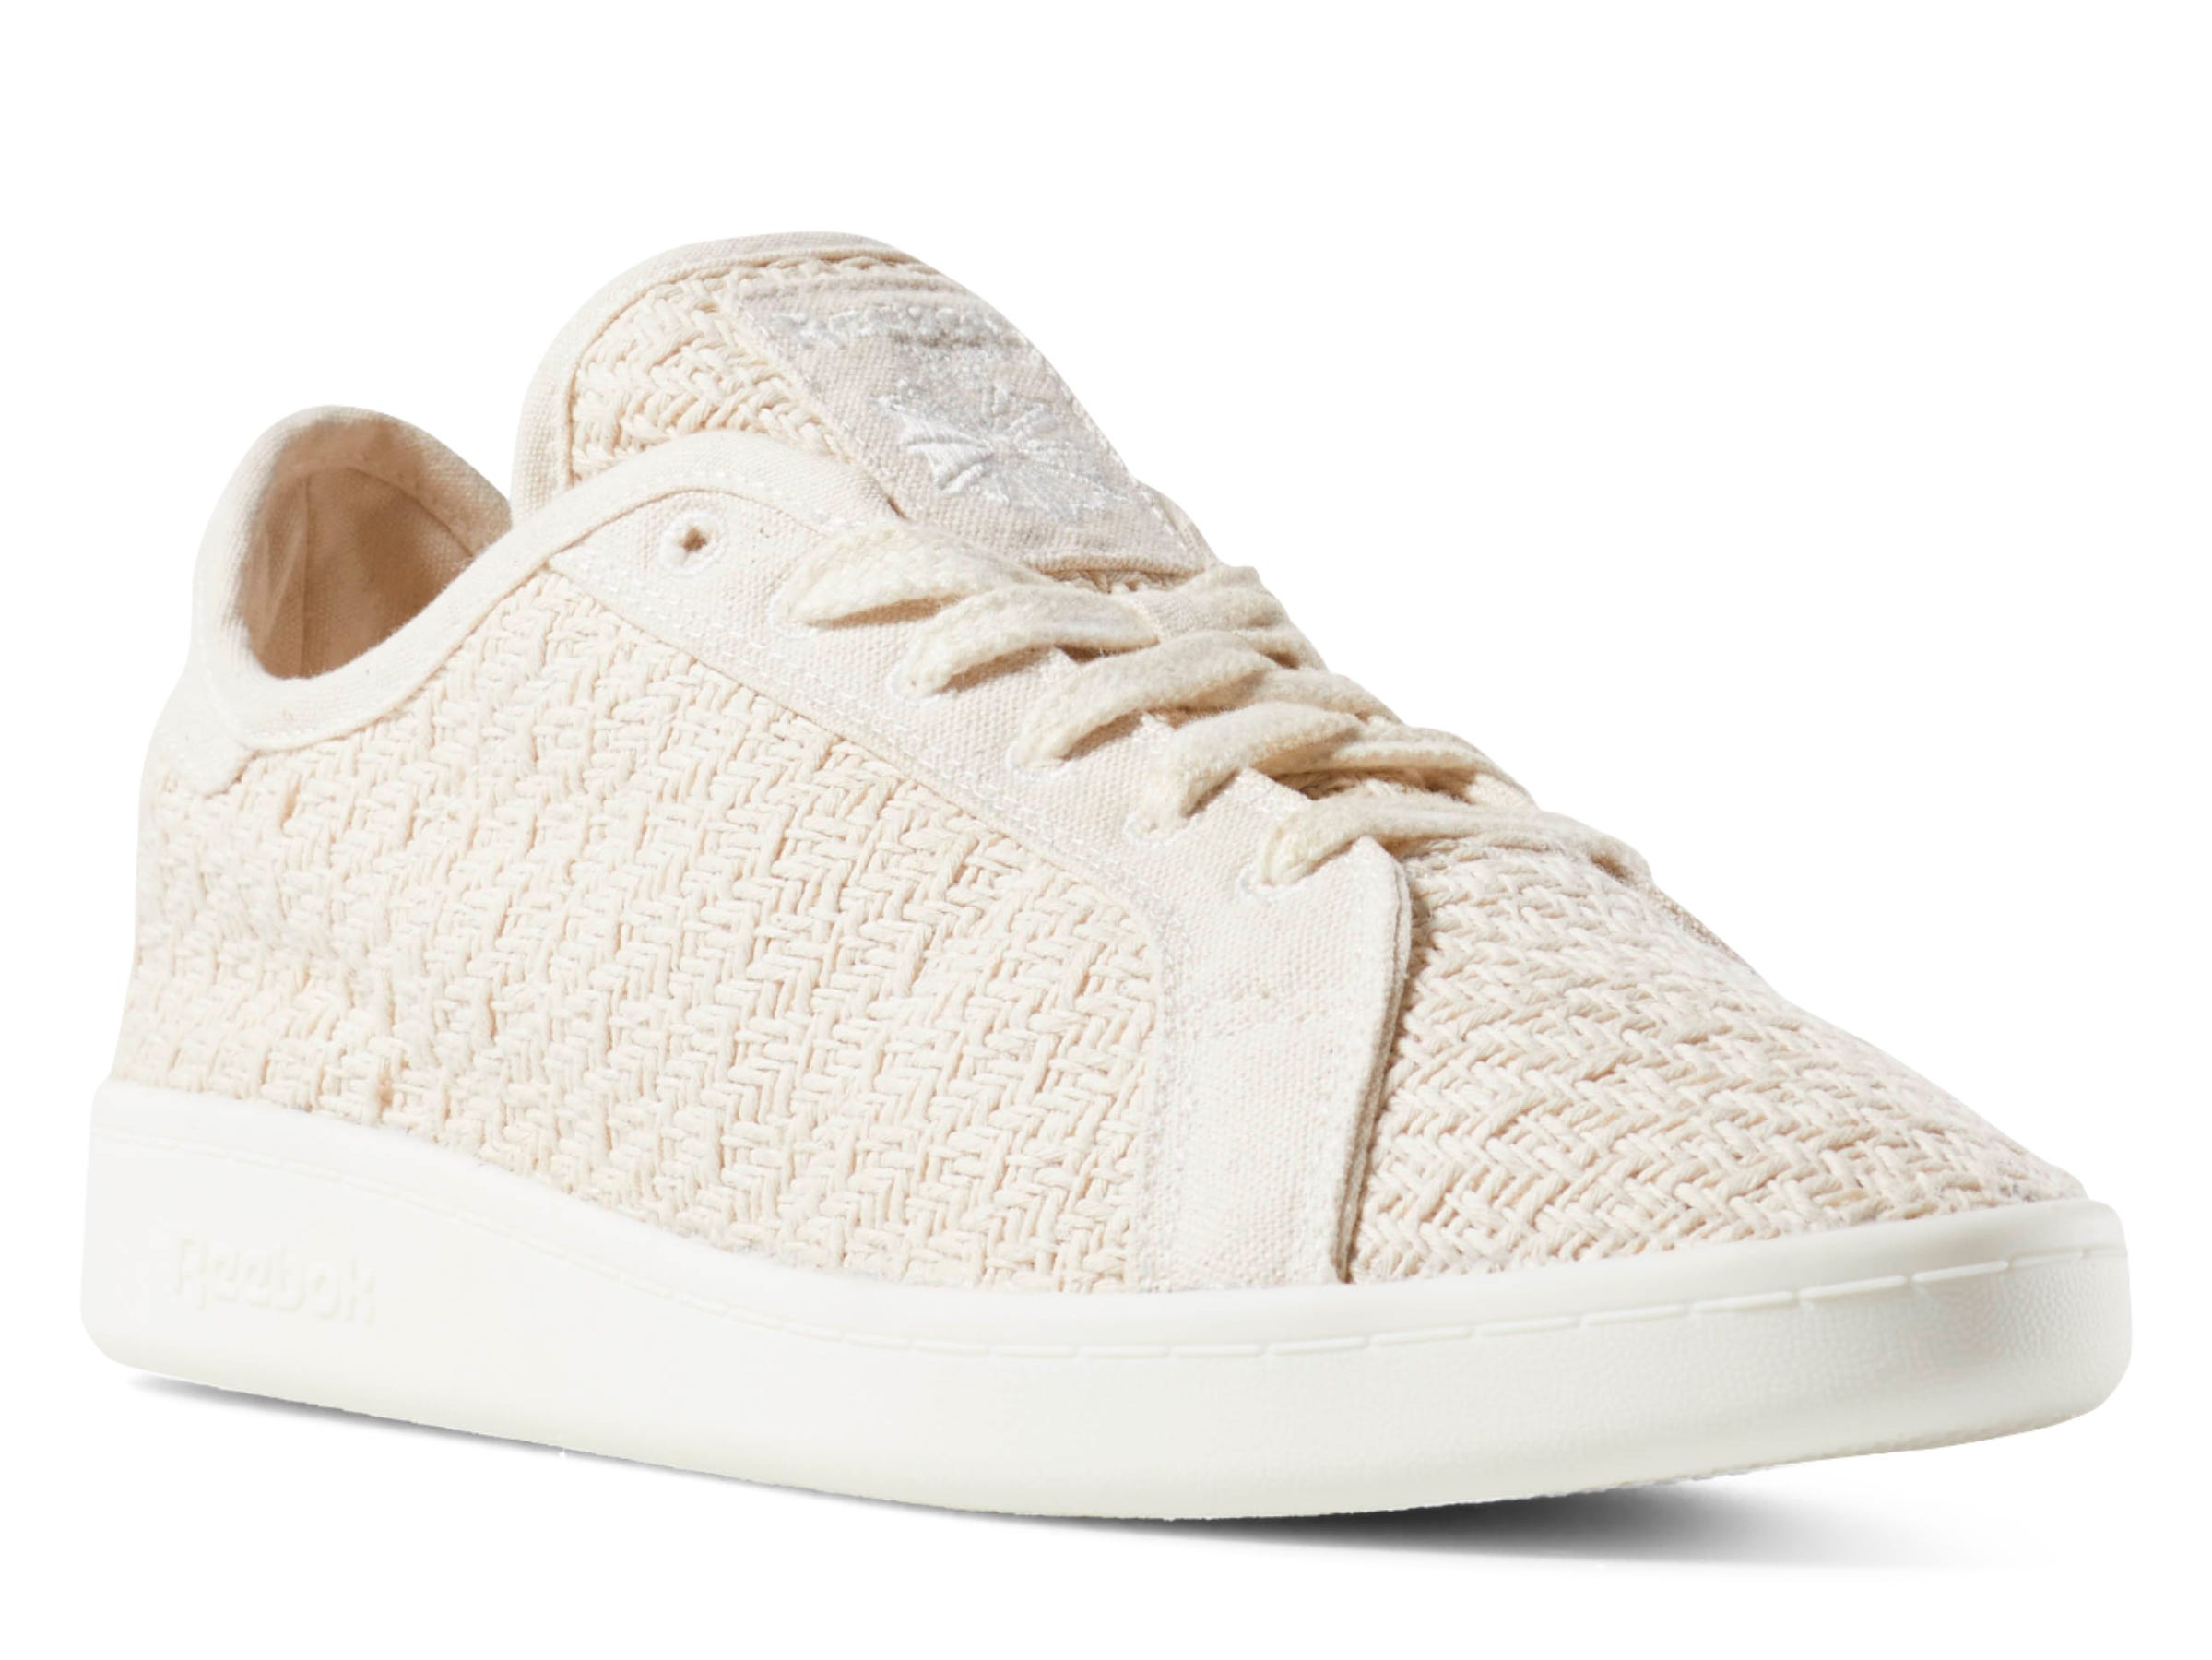 Fitness brand Reebok in August unveiled a new line of bio-based footwear called Called Cotton + Corn. The shoes feature a cotton upper and soles made from a corn derivative instead of the petroleum-based synthetic rubber that is common in the industry.